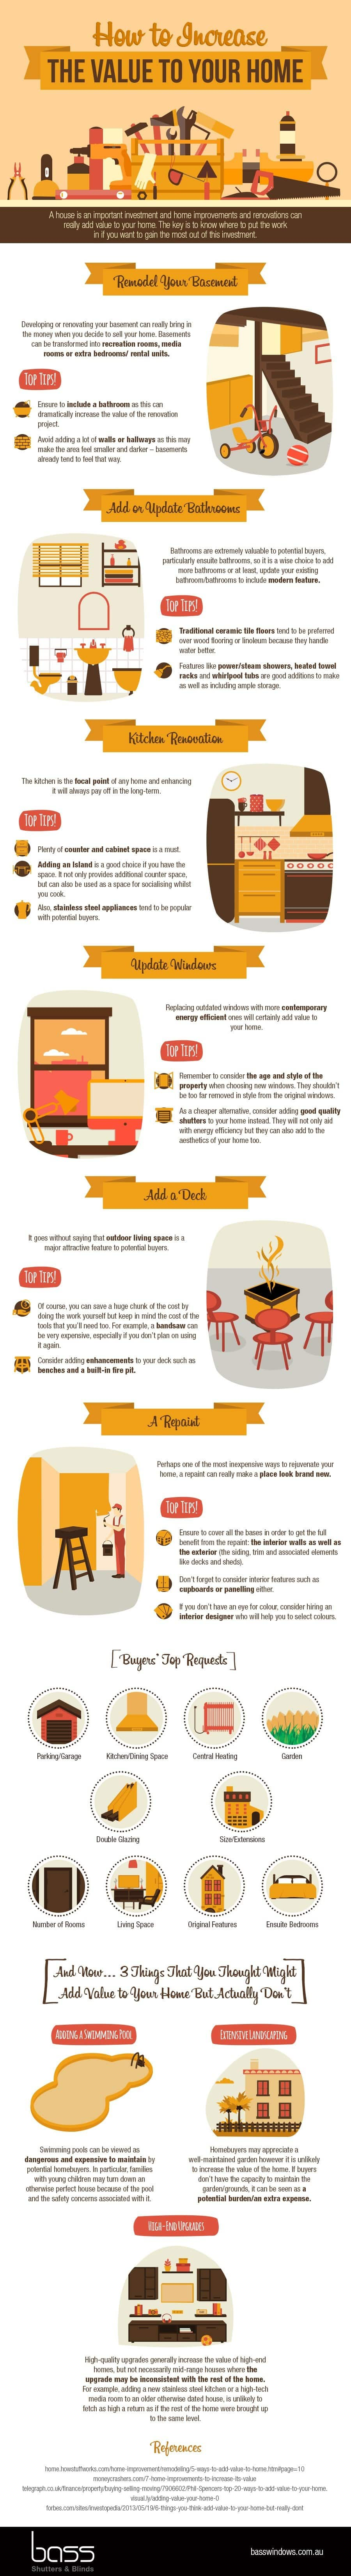 How To Increase Value Of Your Home - Awesome Infographic